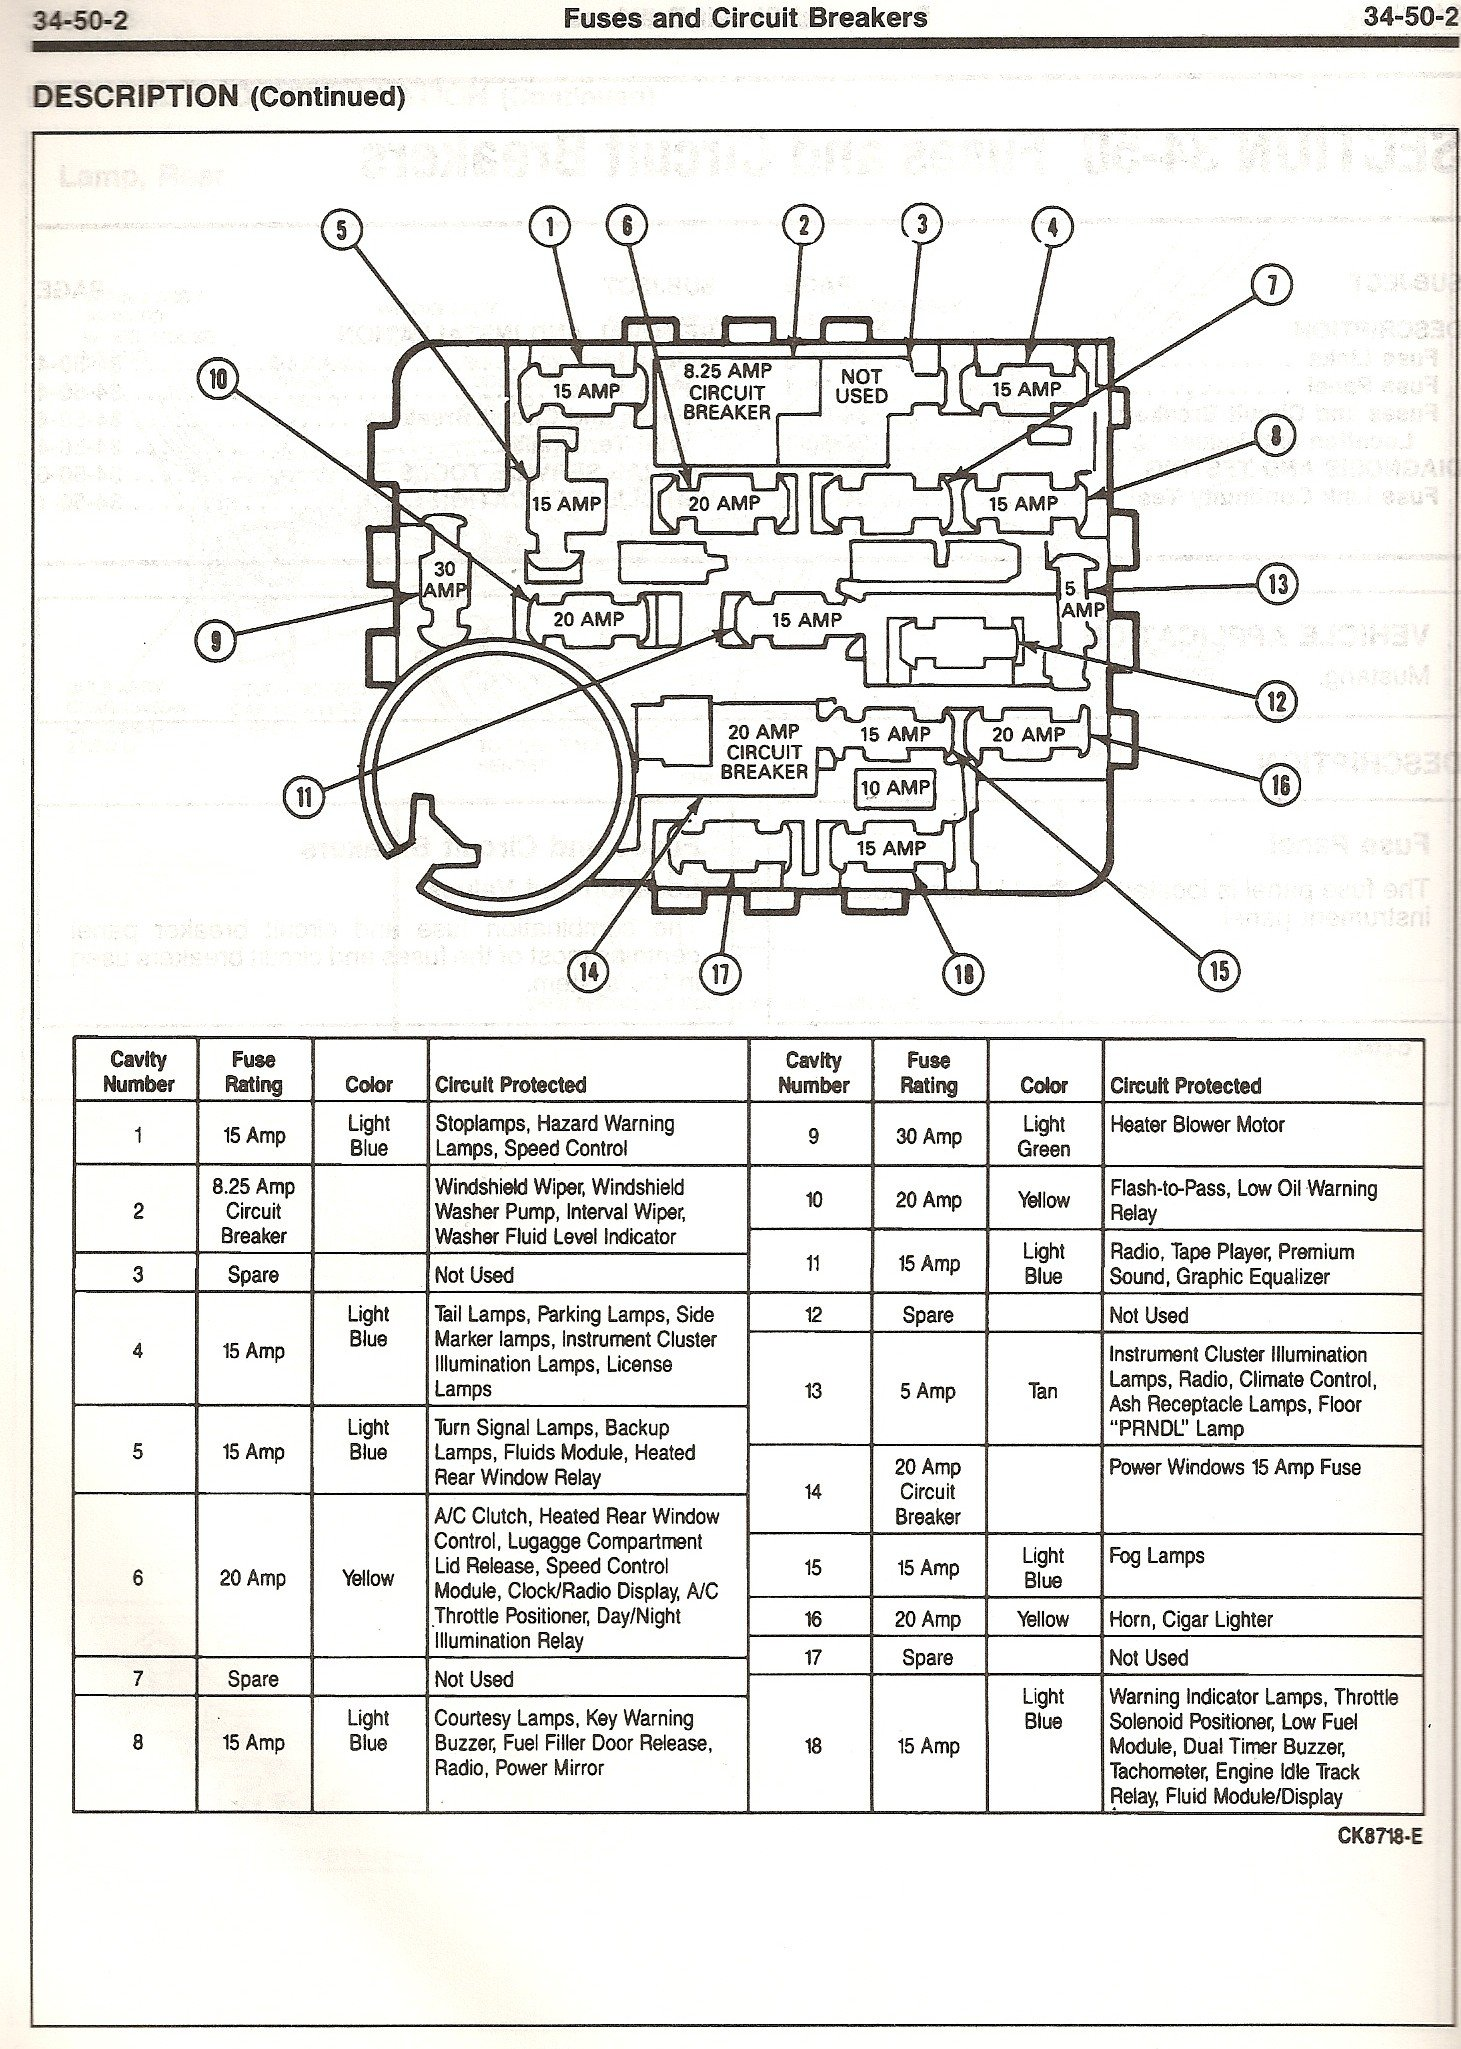 ford mustang fuel pump wiring diagram images ford mustang ford mustang fuse box diagram as well 2002 f650 wiring